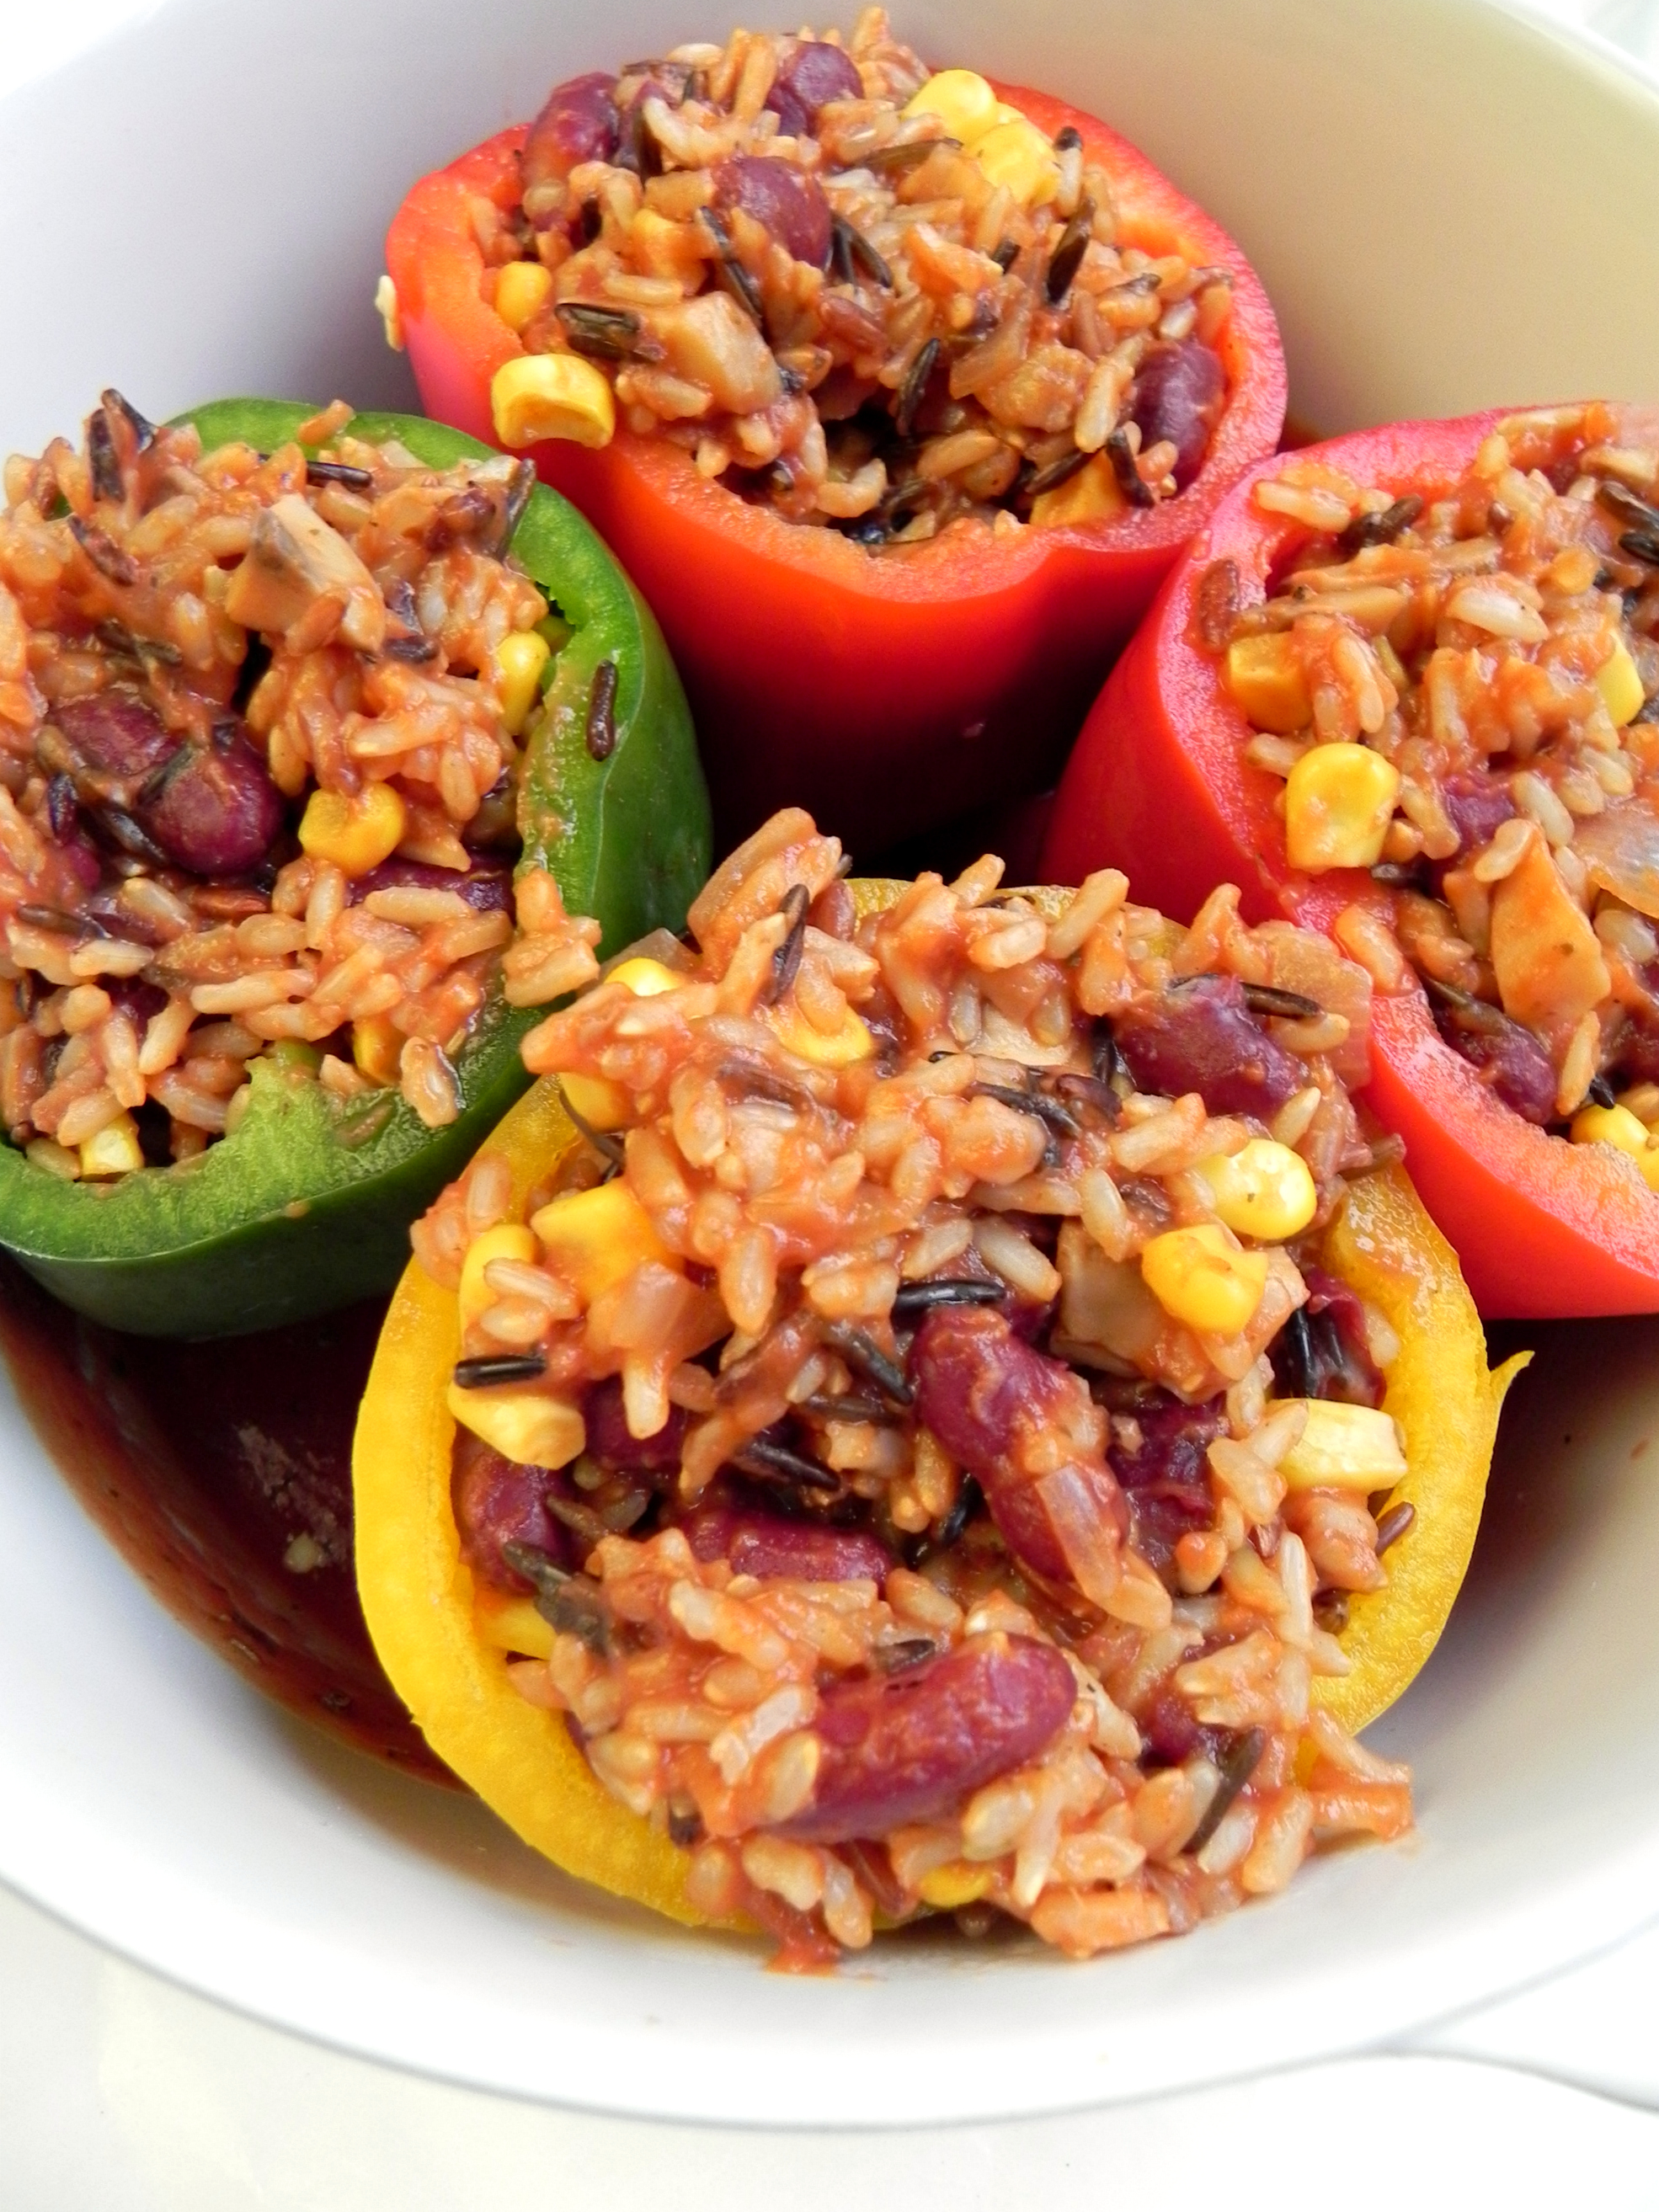 And if you do make these Vegan Stuffed Peppers or any other recipes ...